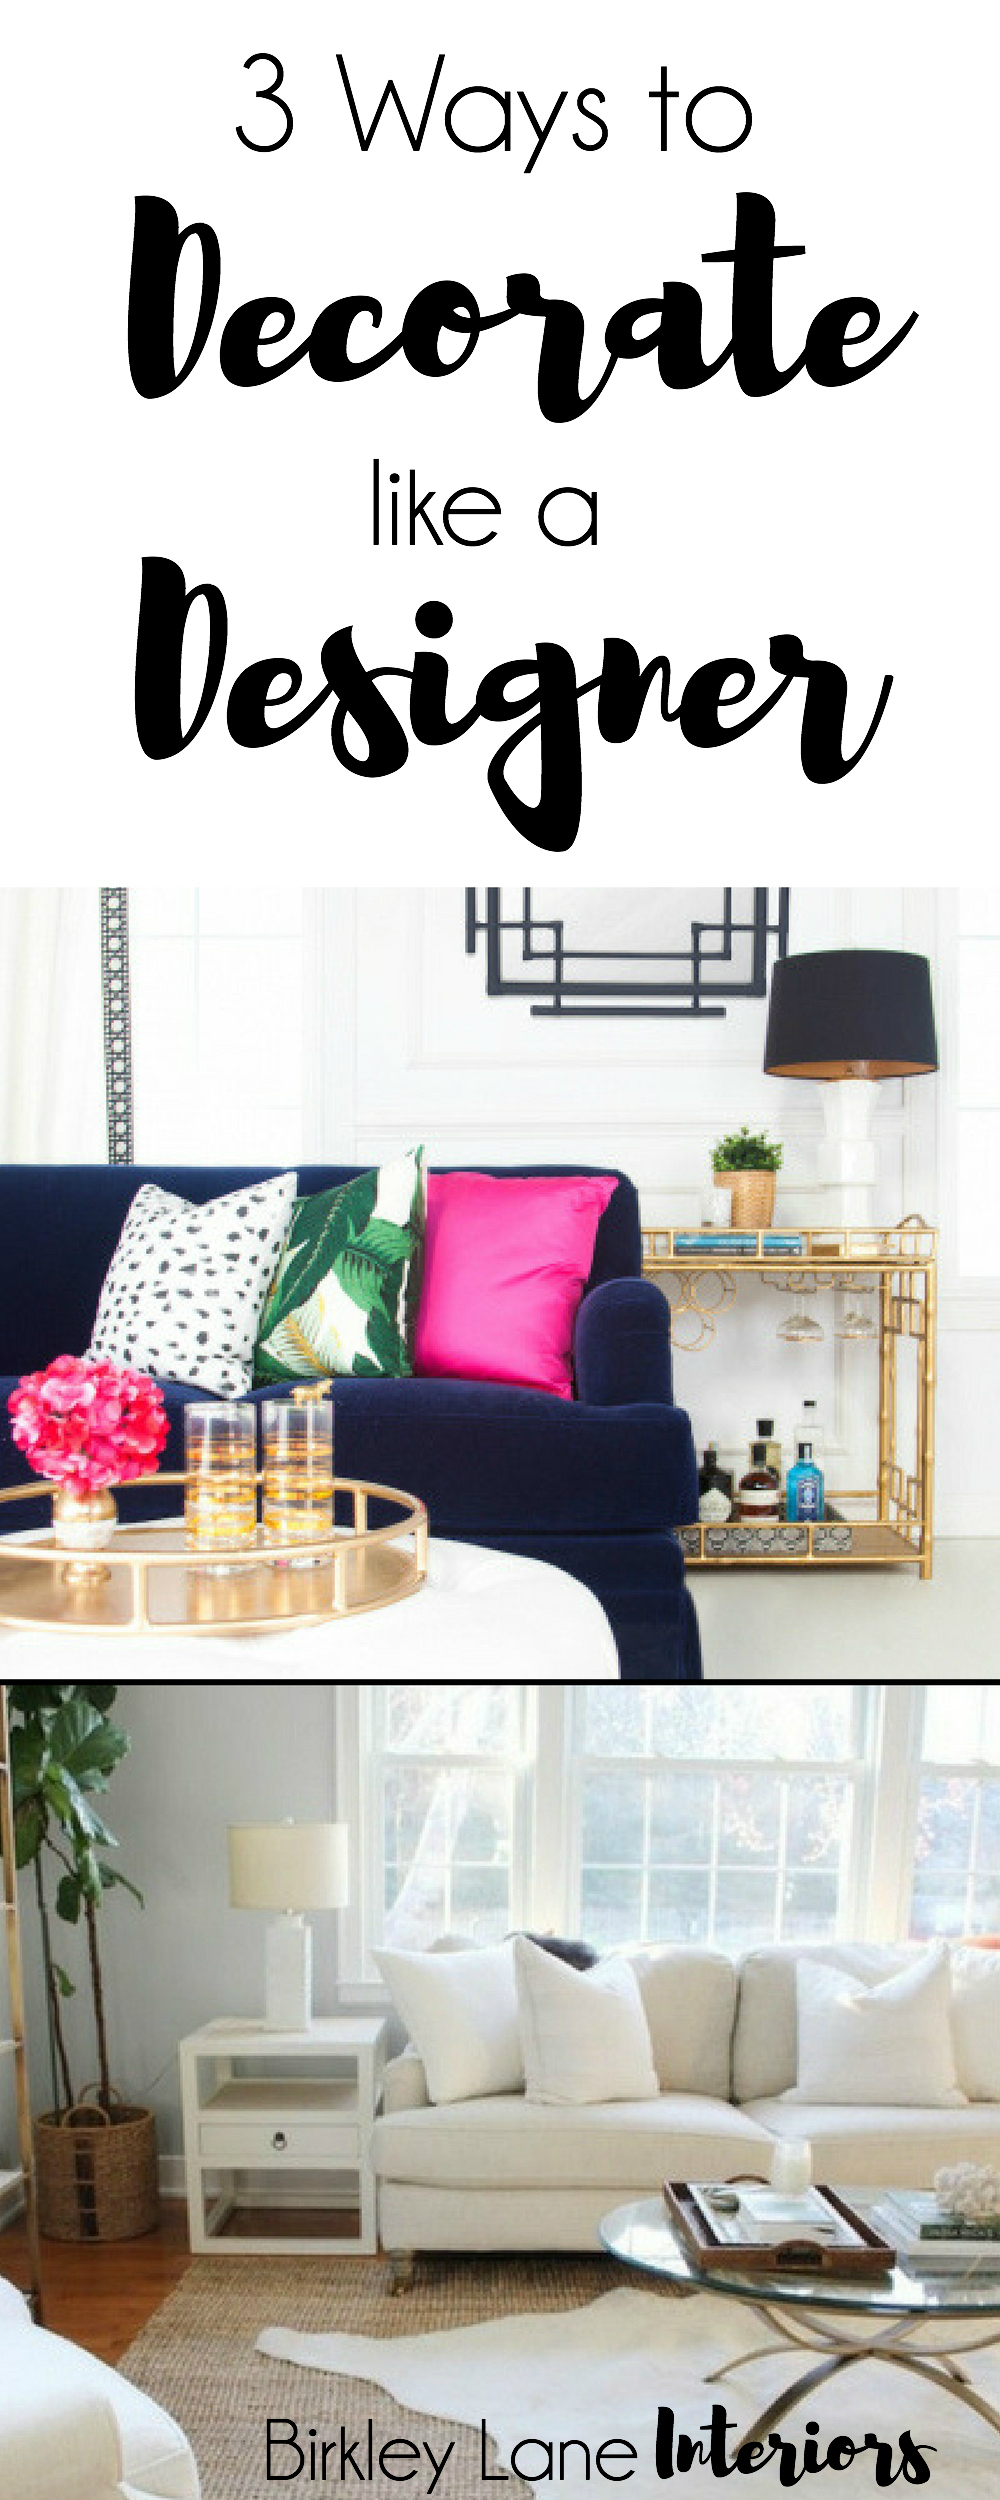 Need some help picking out what colors to use in your home? Click here to learn how to choose a color scheme like a designer!